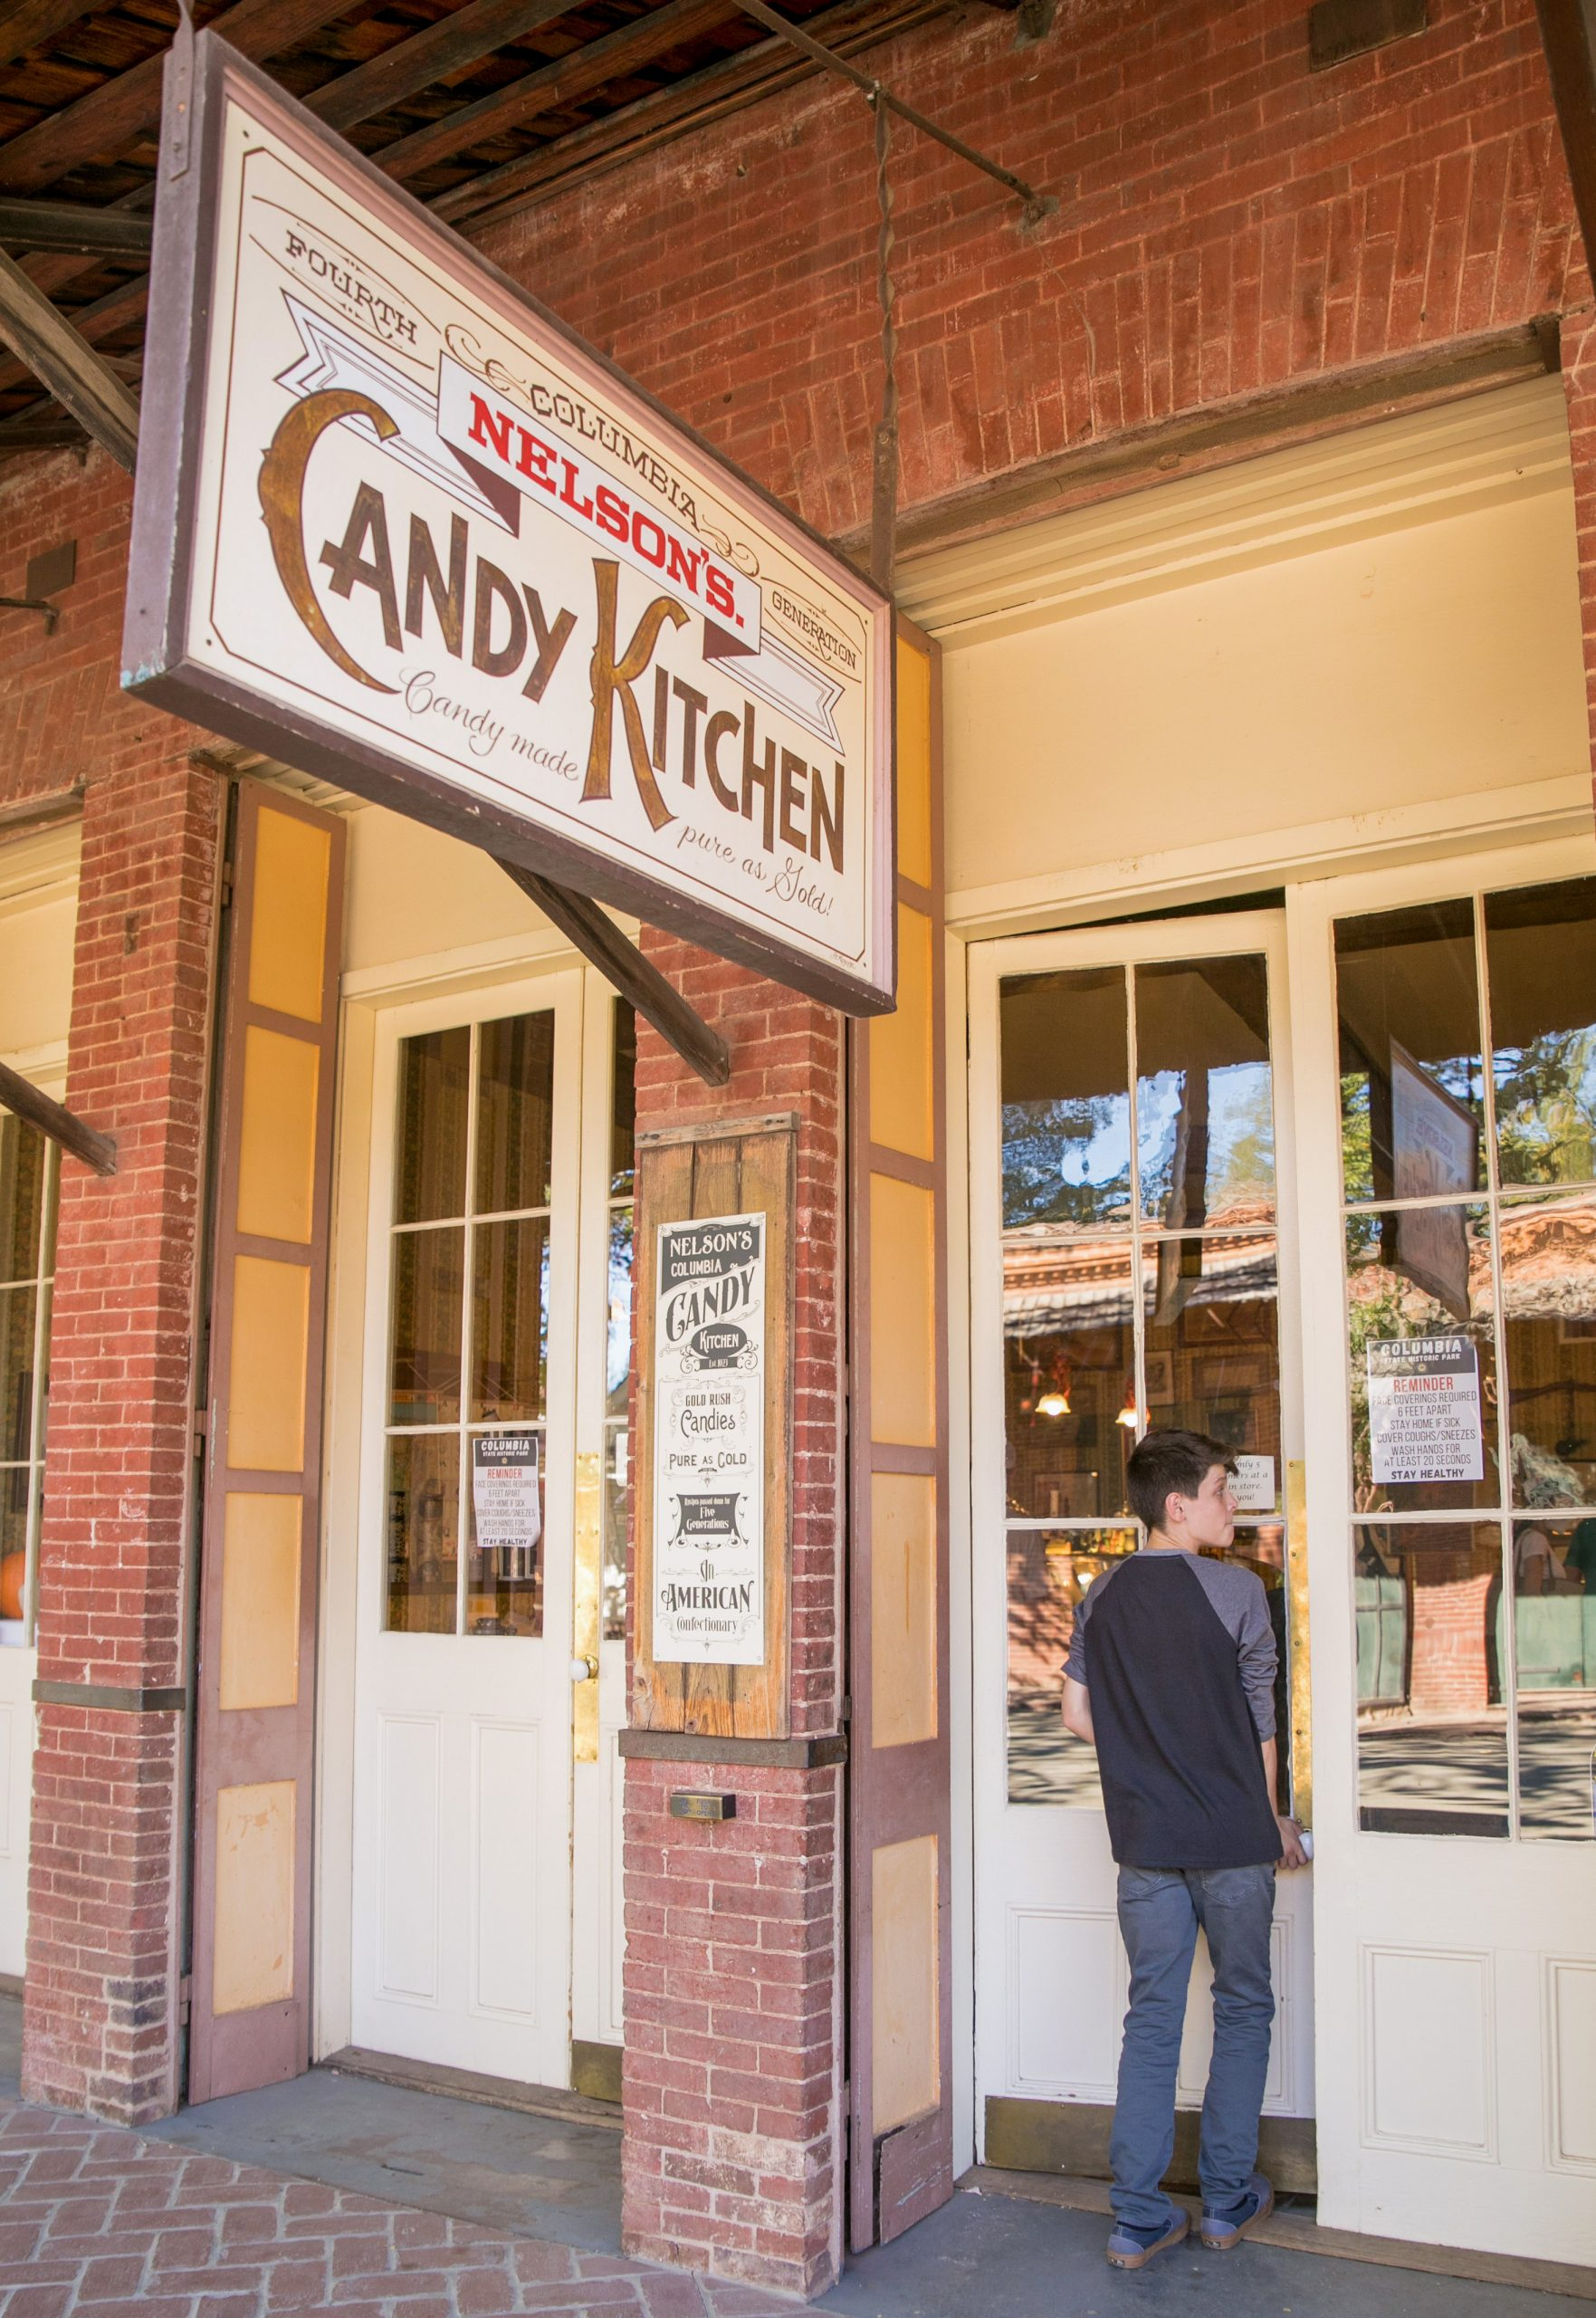 Columbia Candy Kitchen